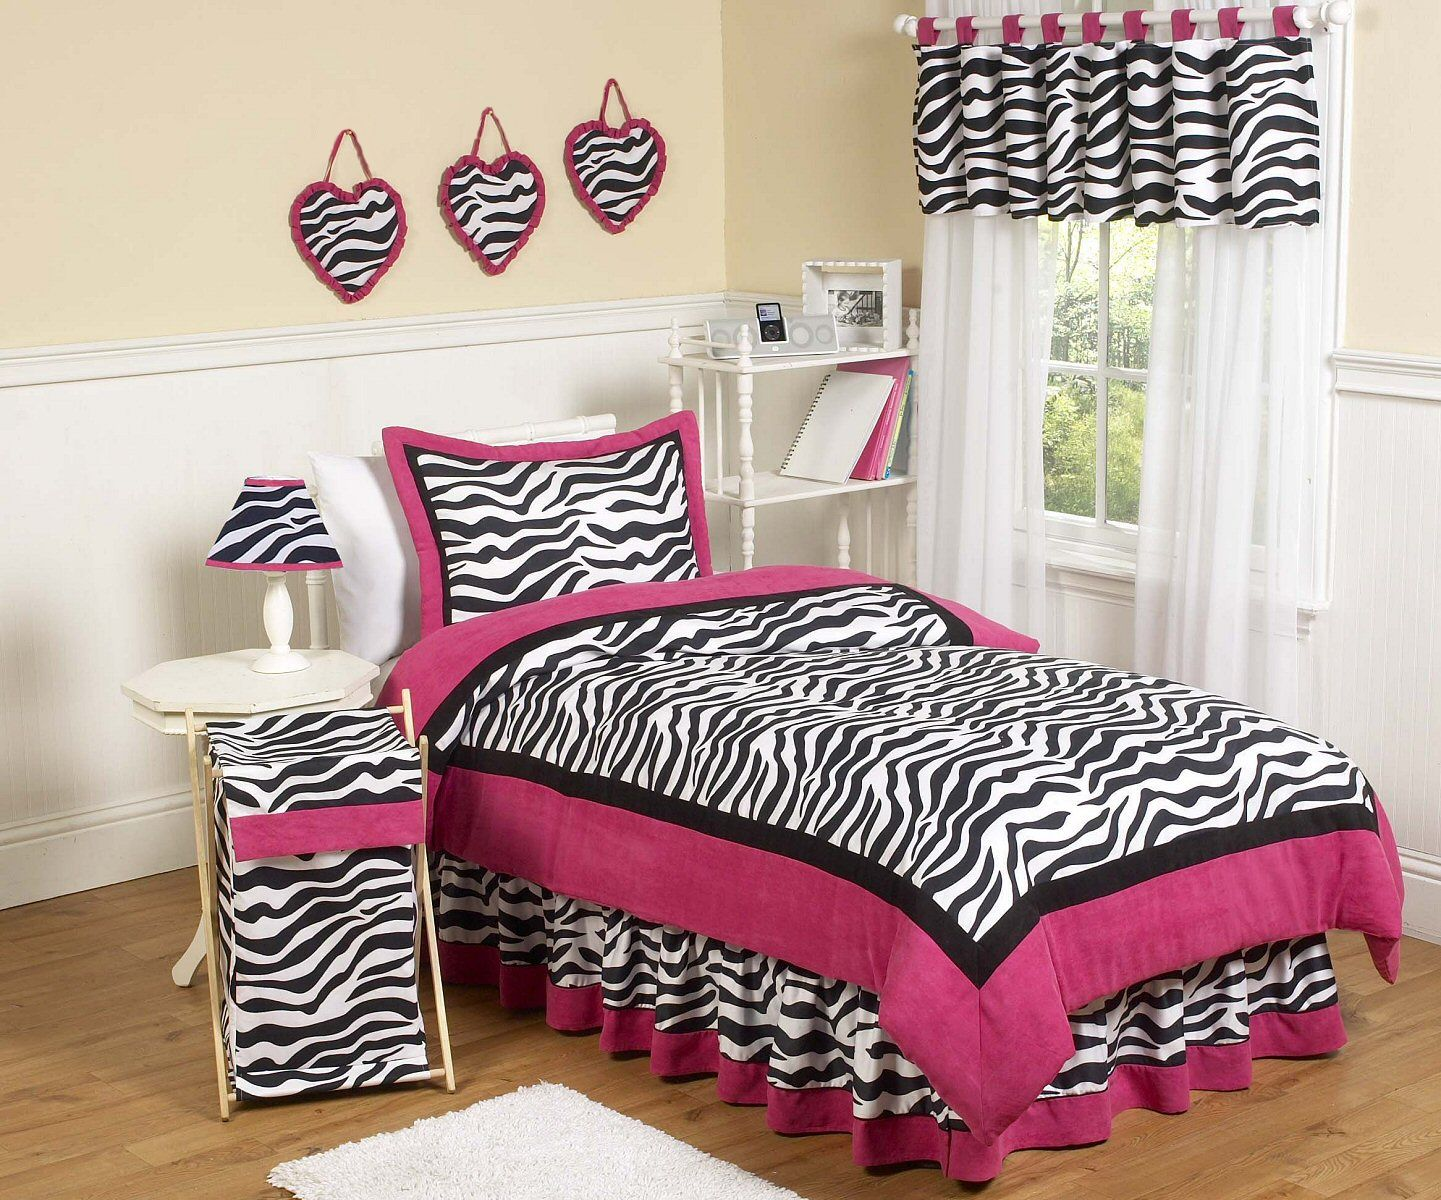 Hot Pink & Black Zebra Print Twin Comforter Set Girls